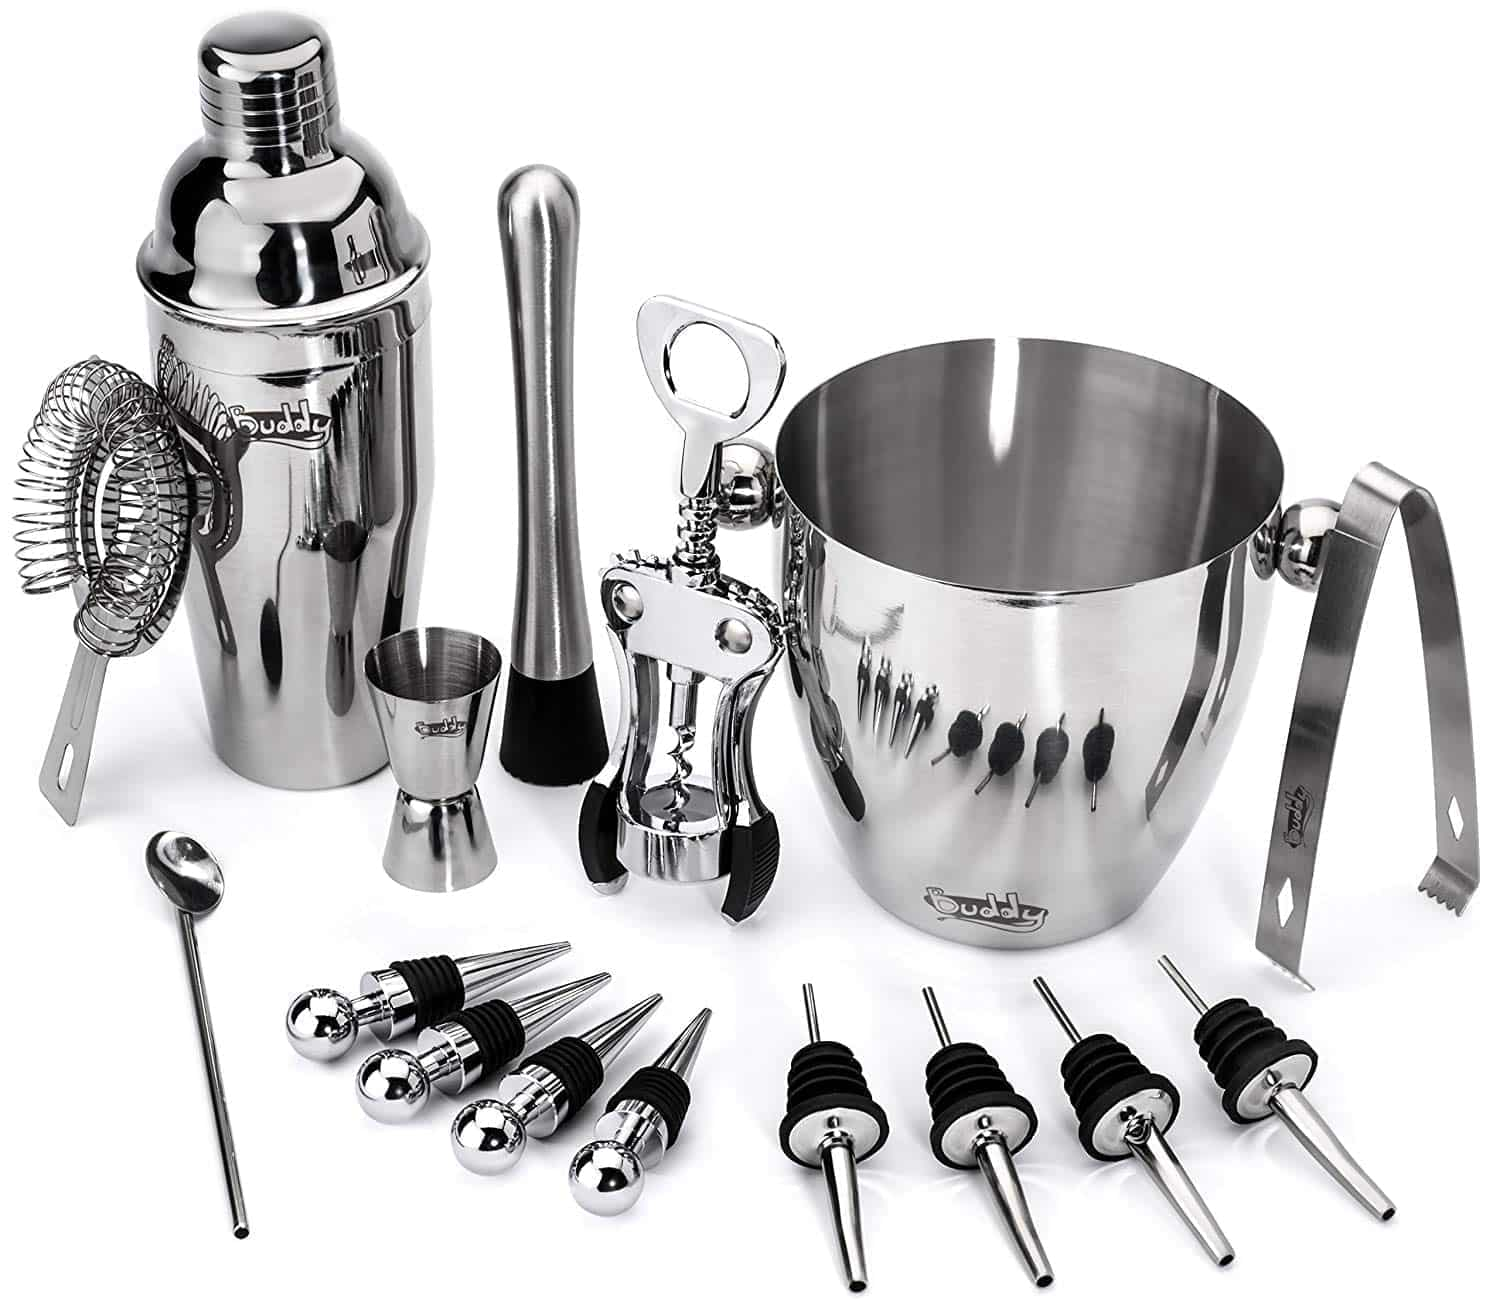 Buddy 16-Piece Wine and Cocktail Mixing Bar Set with Ice bucket